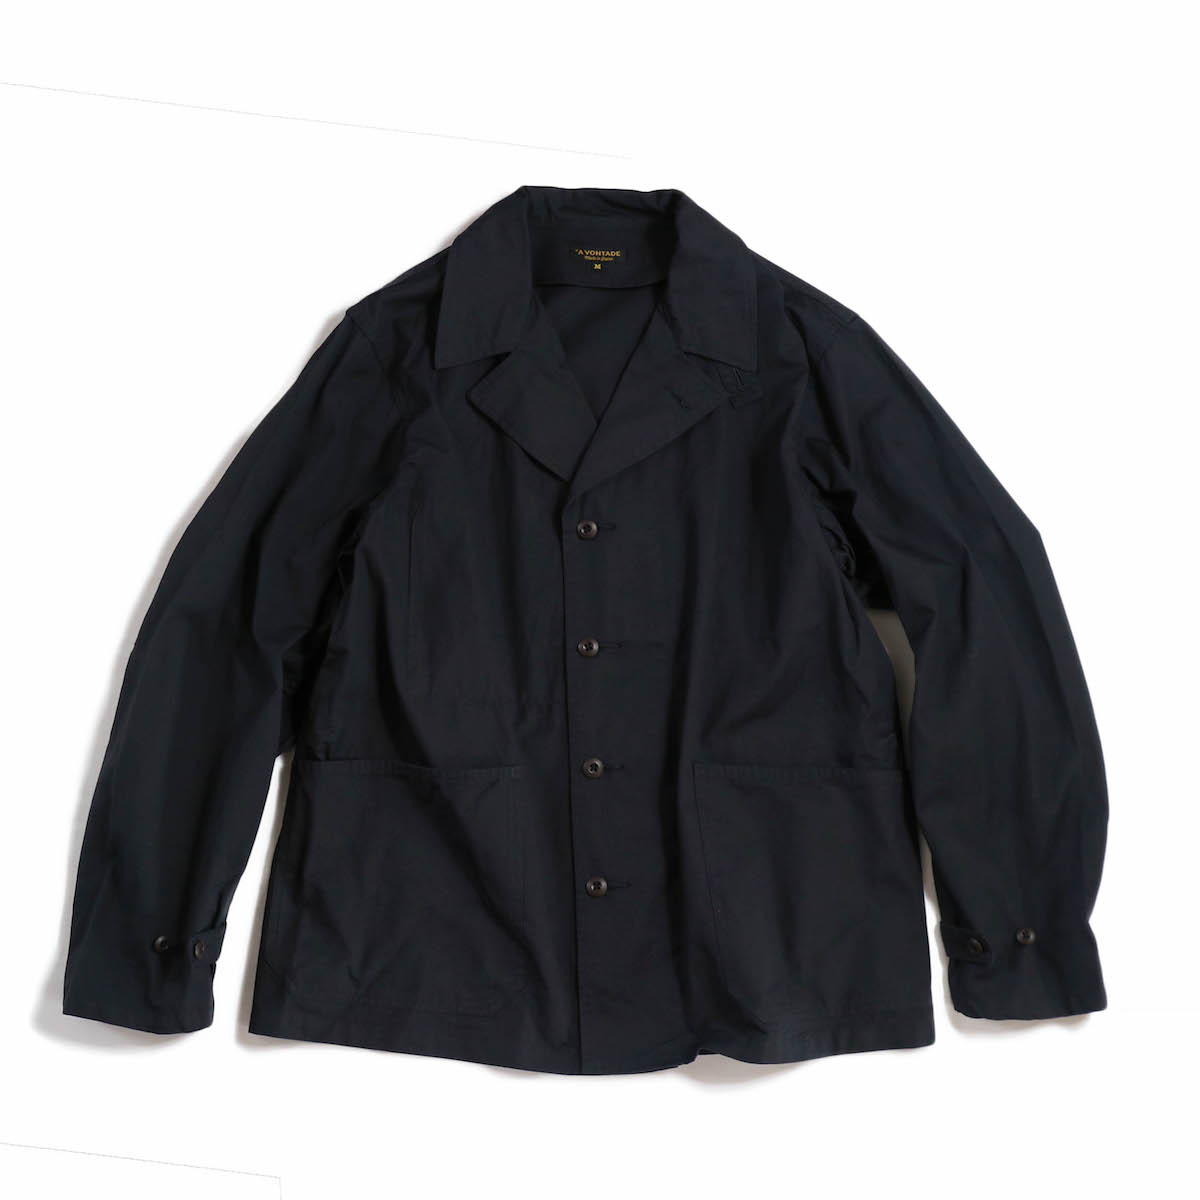 A VONTADE / Utility Coverall Jacket